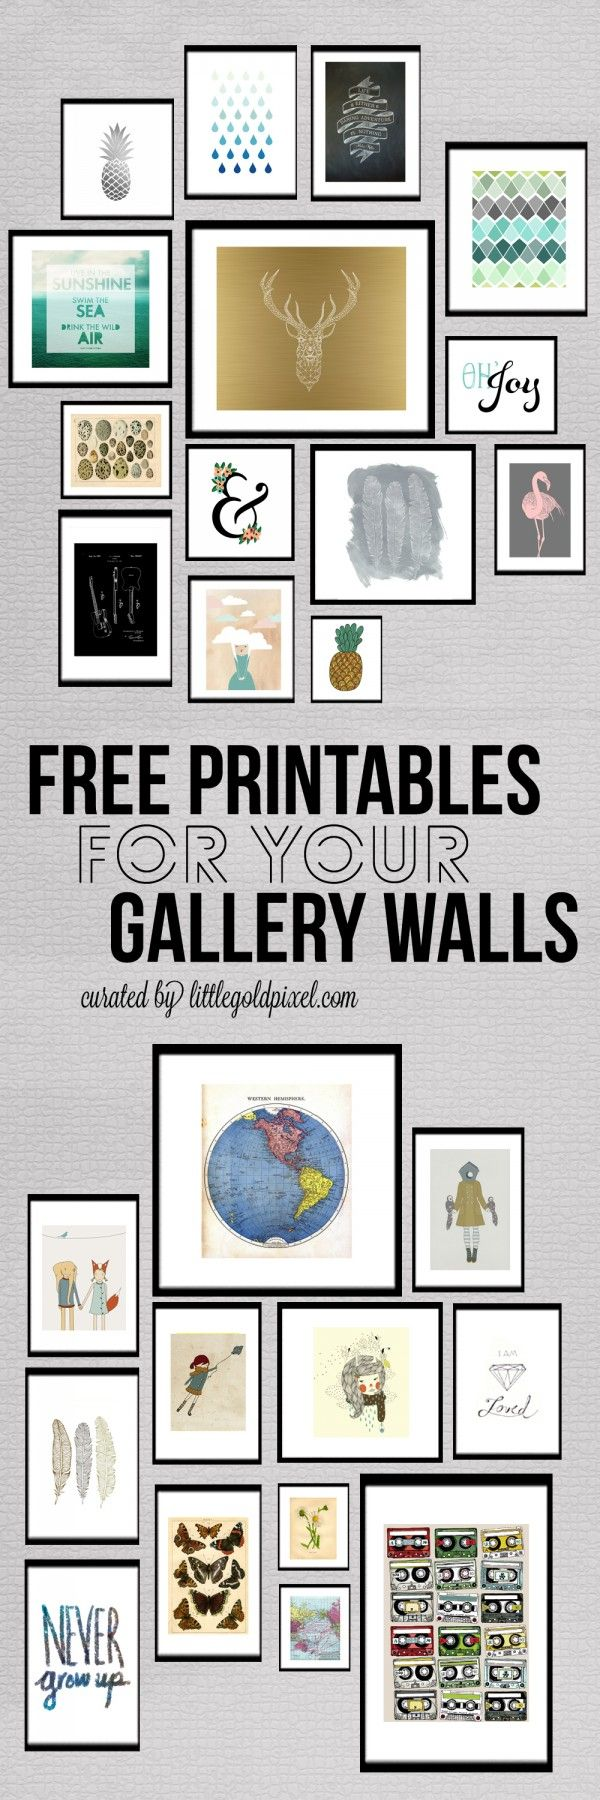 {free printables for gallery walls}